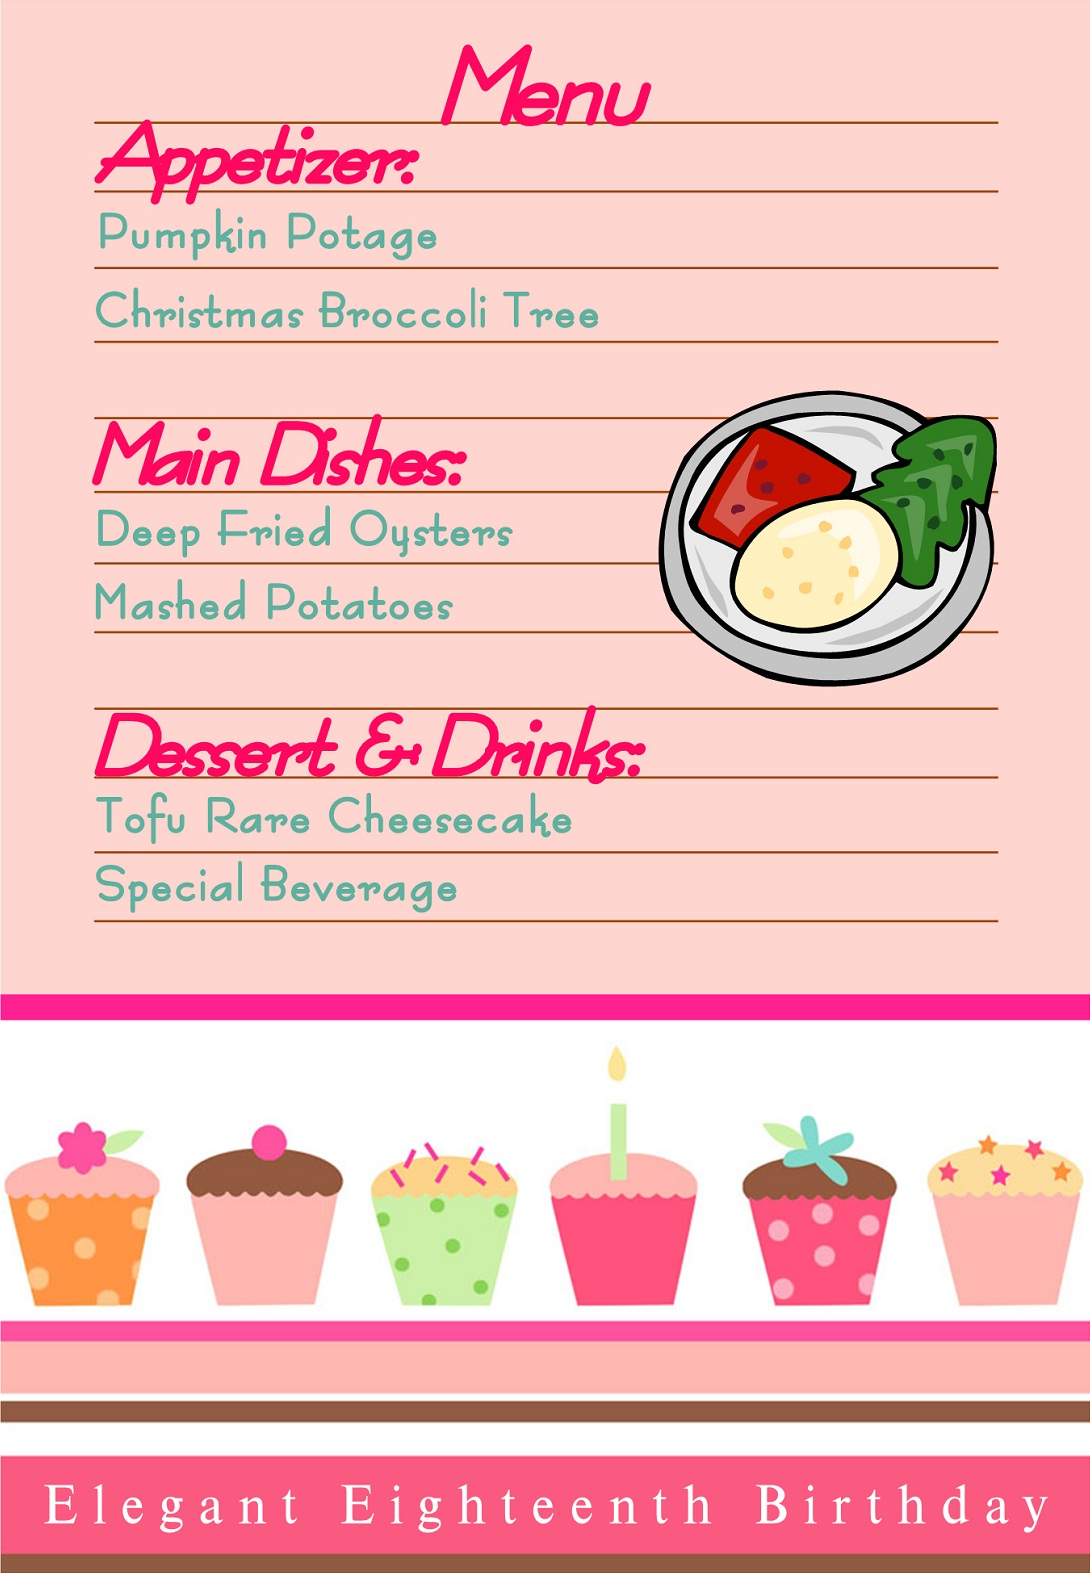 imágenes de what food to serve at an 18th birthday party